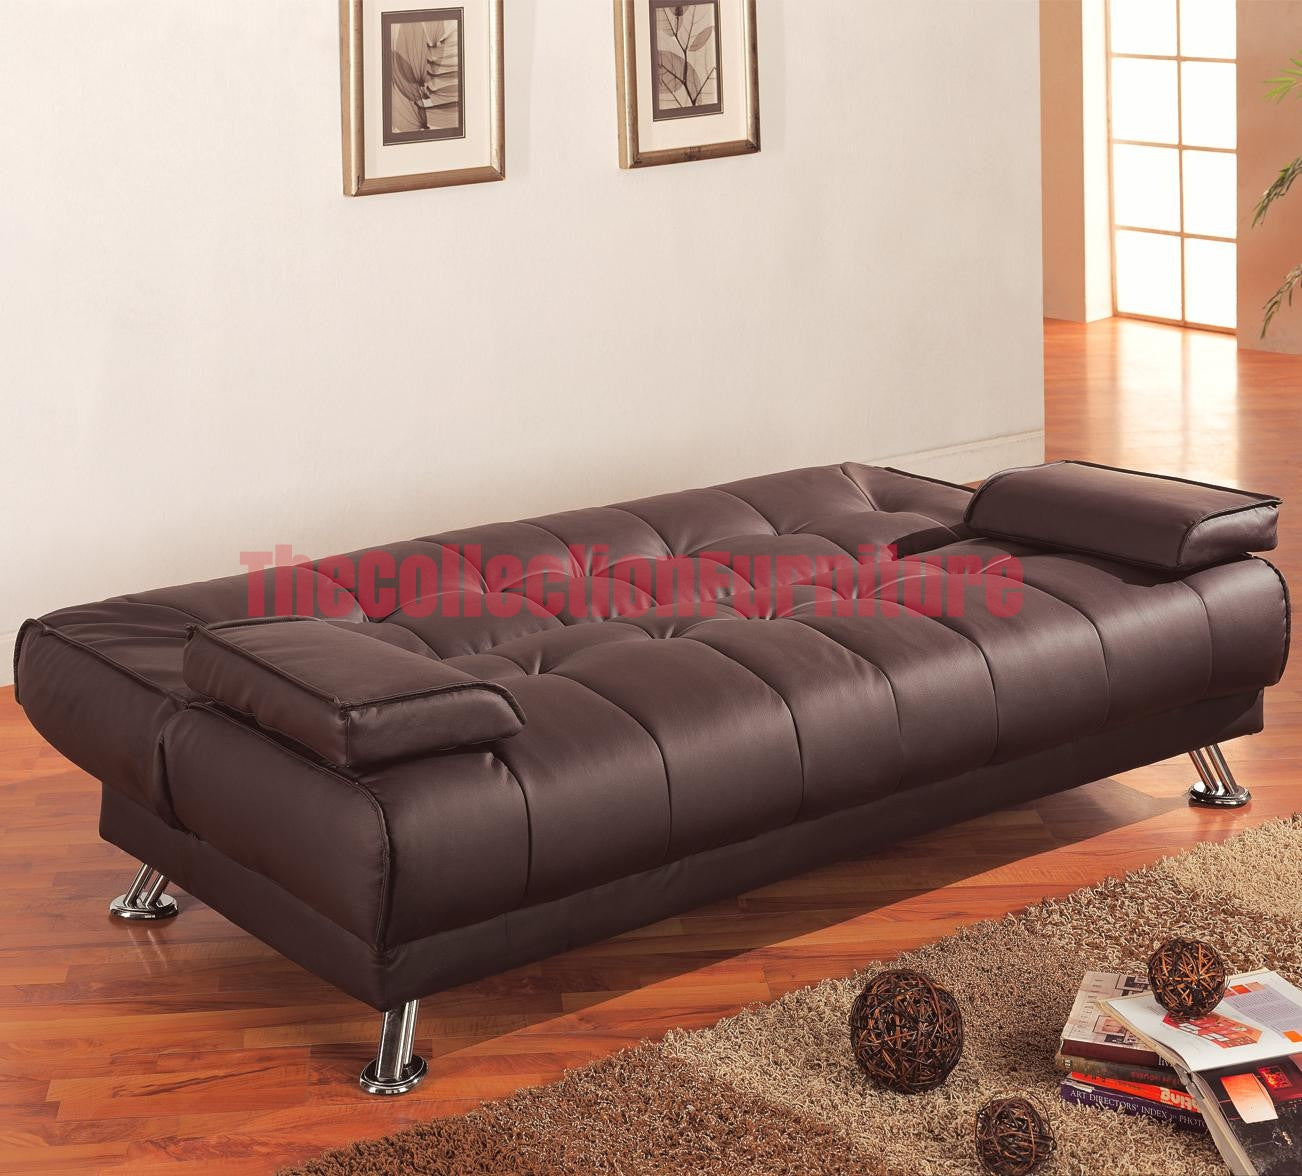 Brown Leatherette Modern Futon Sofa Bed – The Collection Furniture